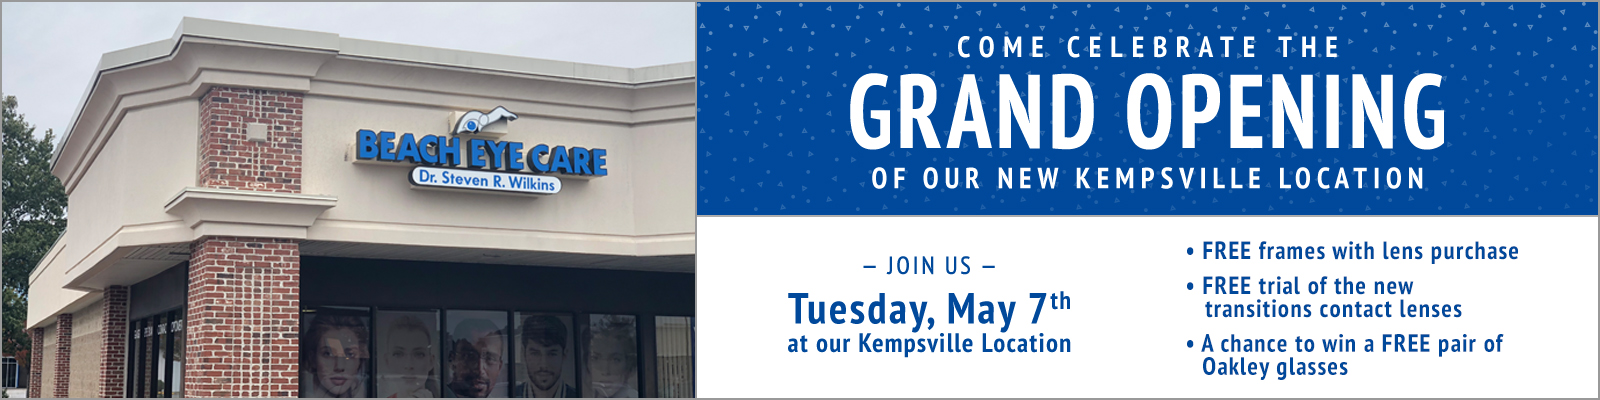 9f81b84c9e5 Come celebrate the Grand Opening of our Kempsville Location!